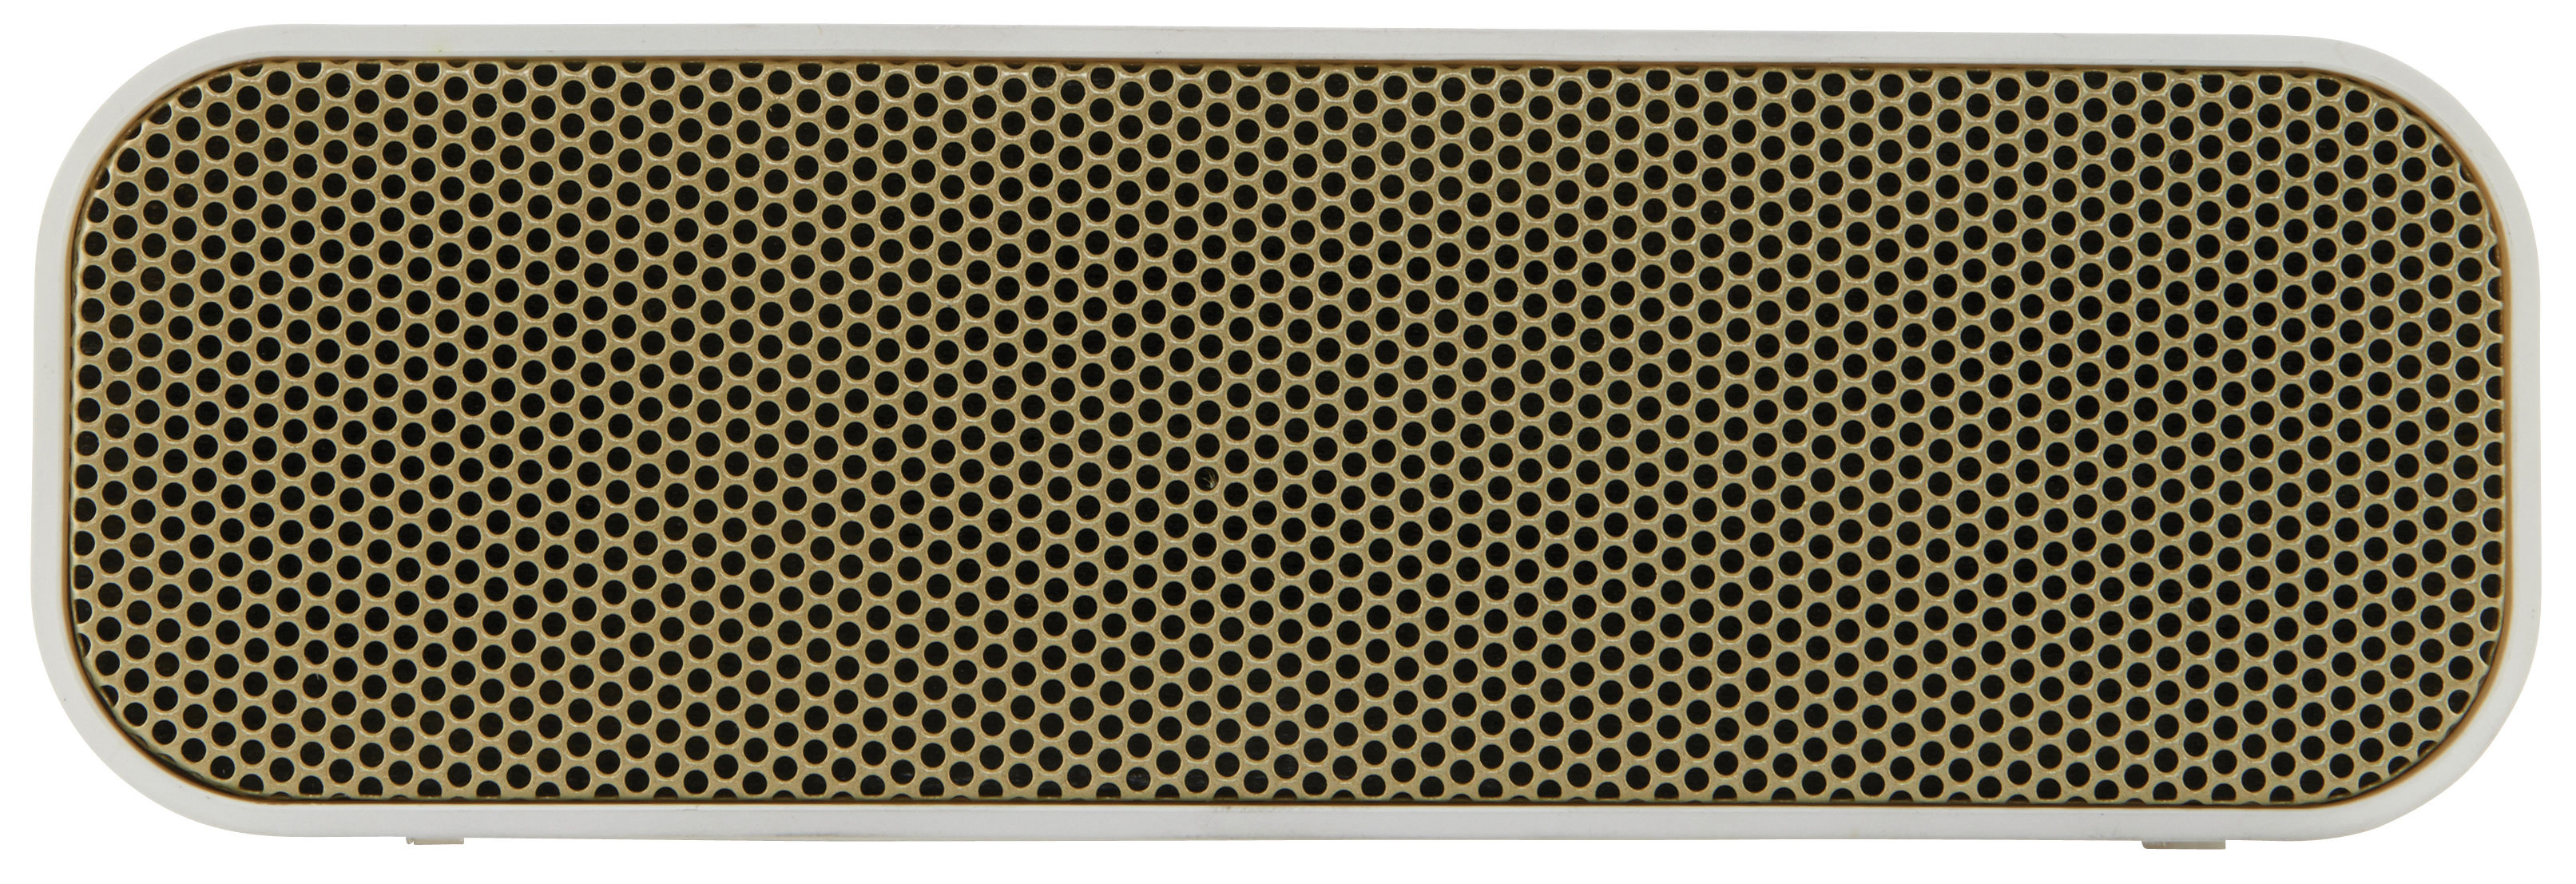 Valentine's day - Valentines Day: Our best ideas for Her - aGROOVE Bluetooth speaker - Wireless by Kreafunk - White, Gold - Plastic material